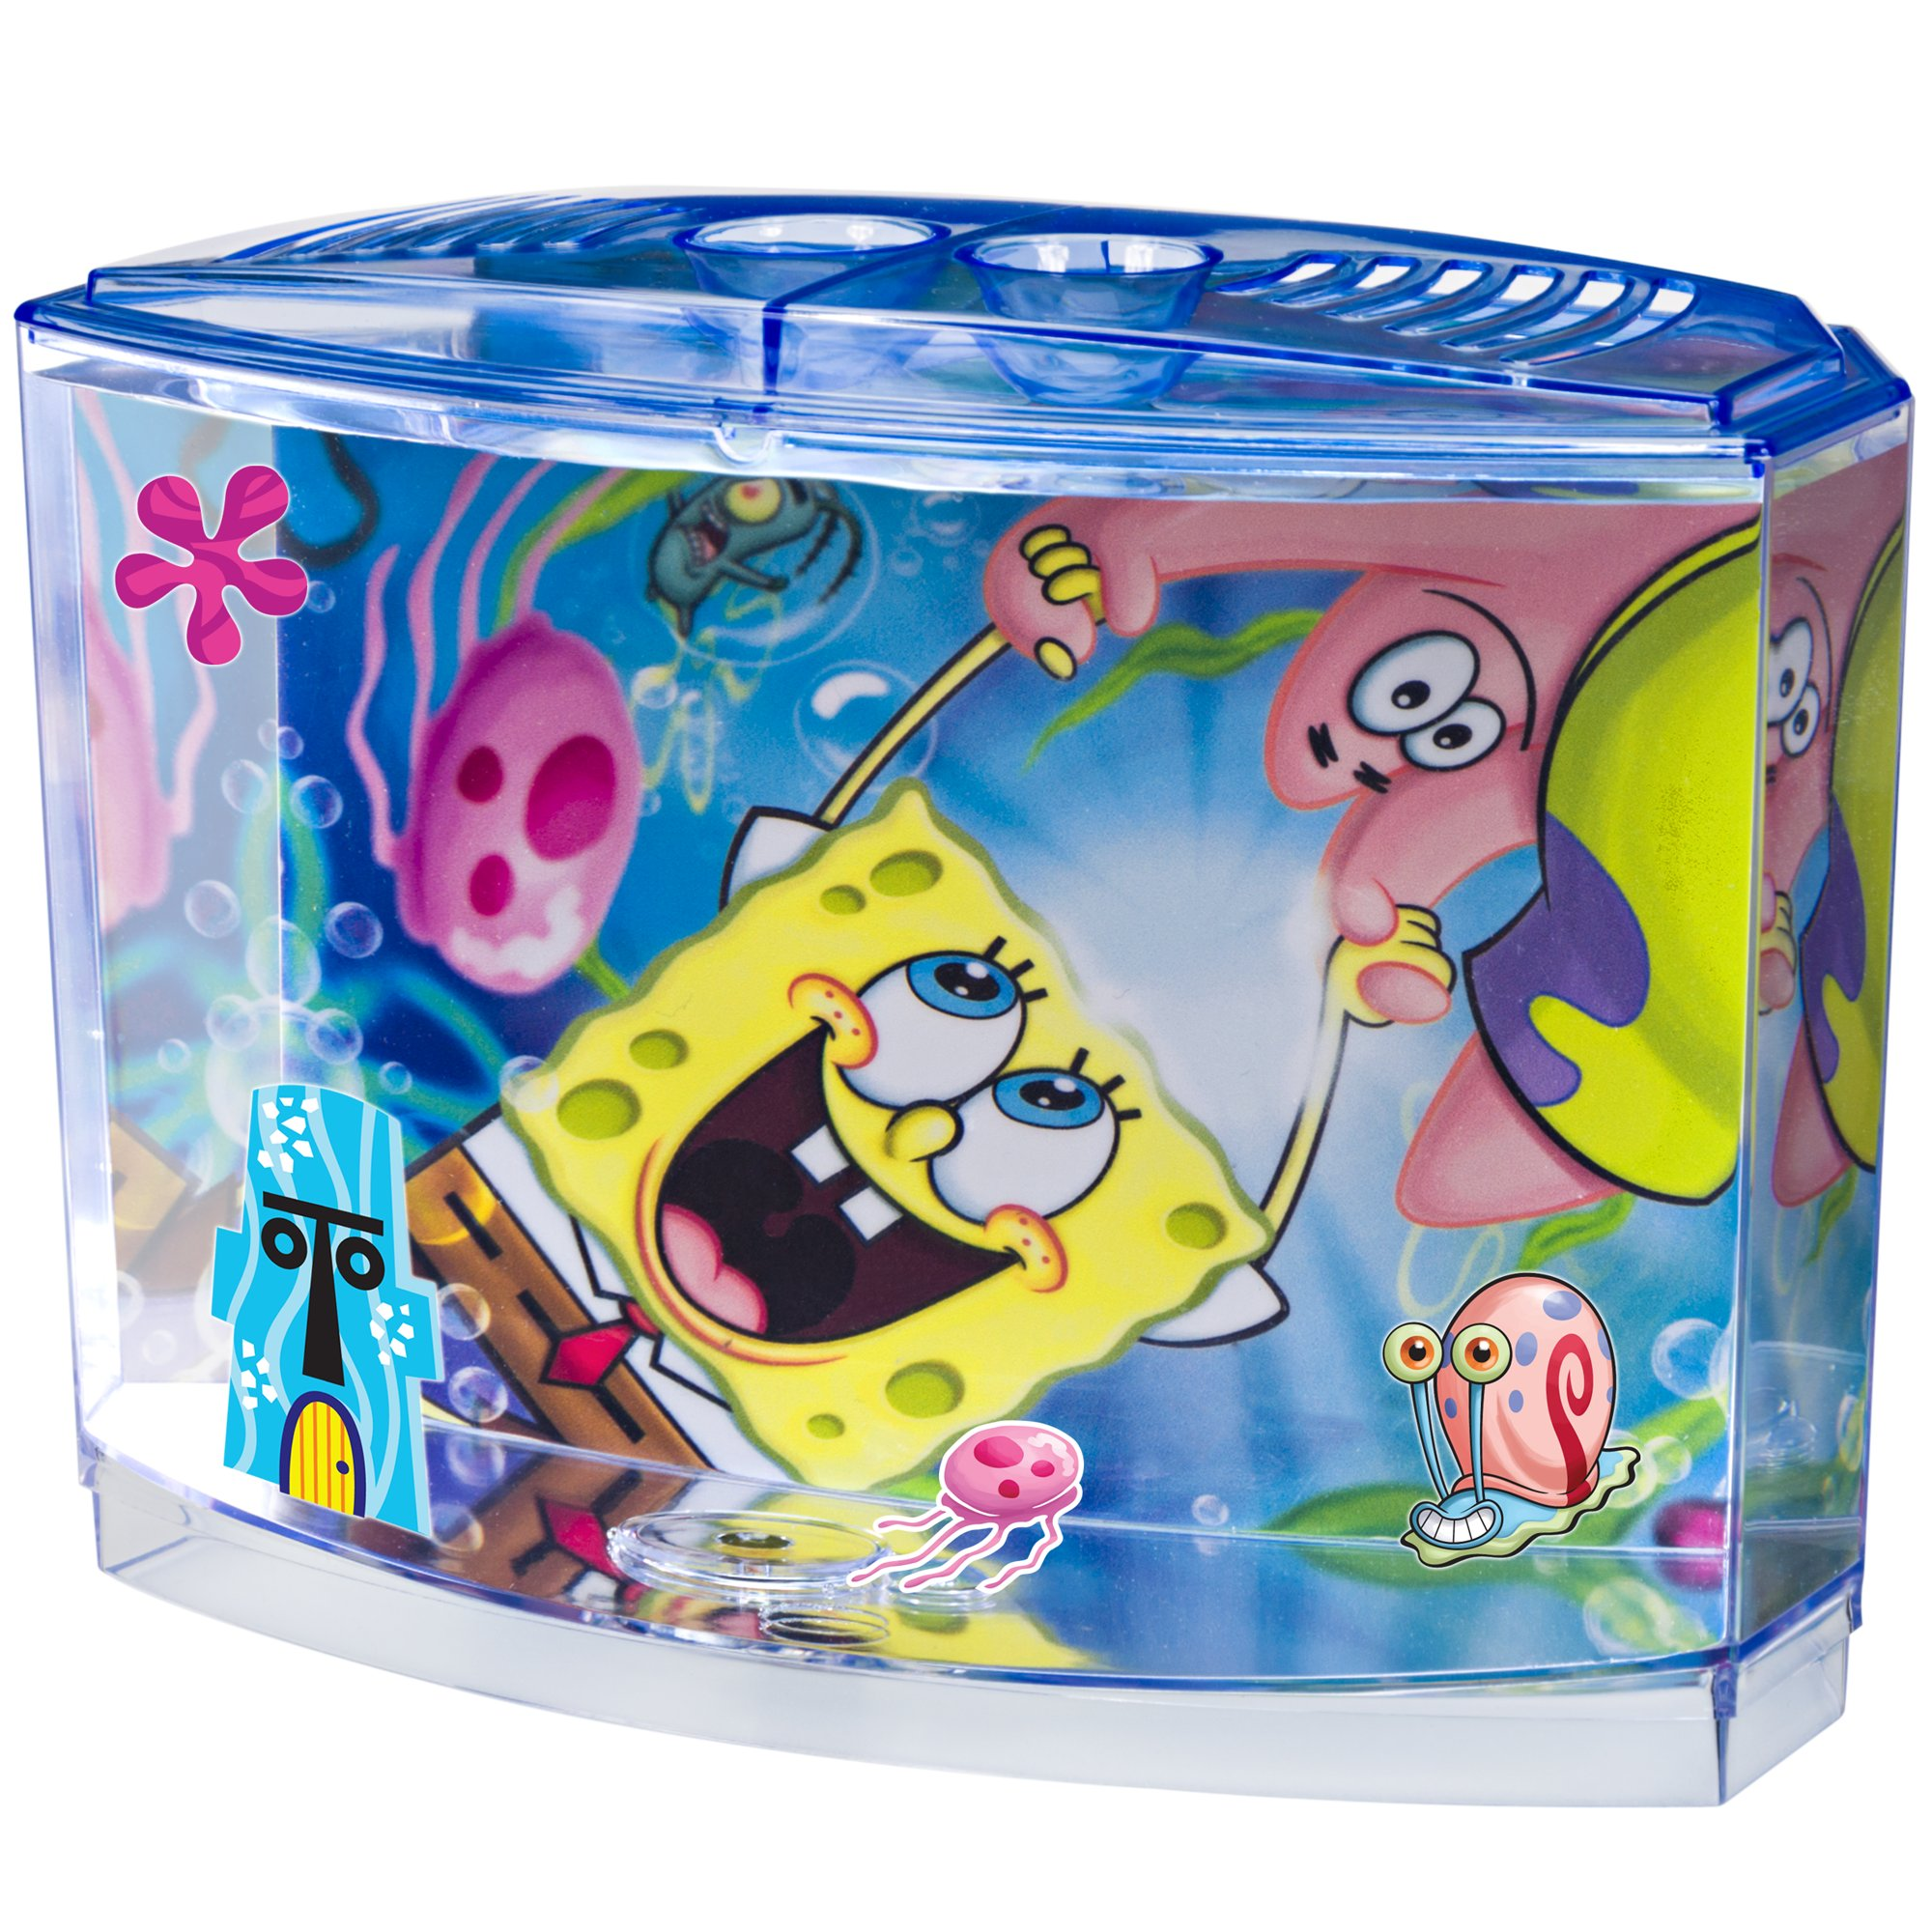 Penn plax spongebob squarepants betta aquarium kit 0 5 for Betta fish tanks petco